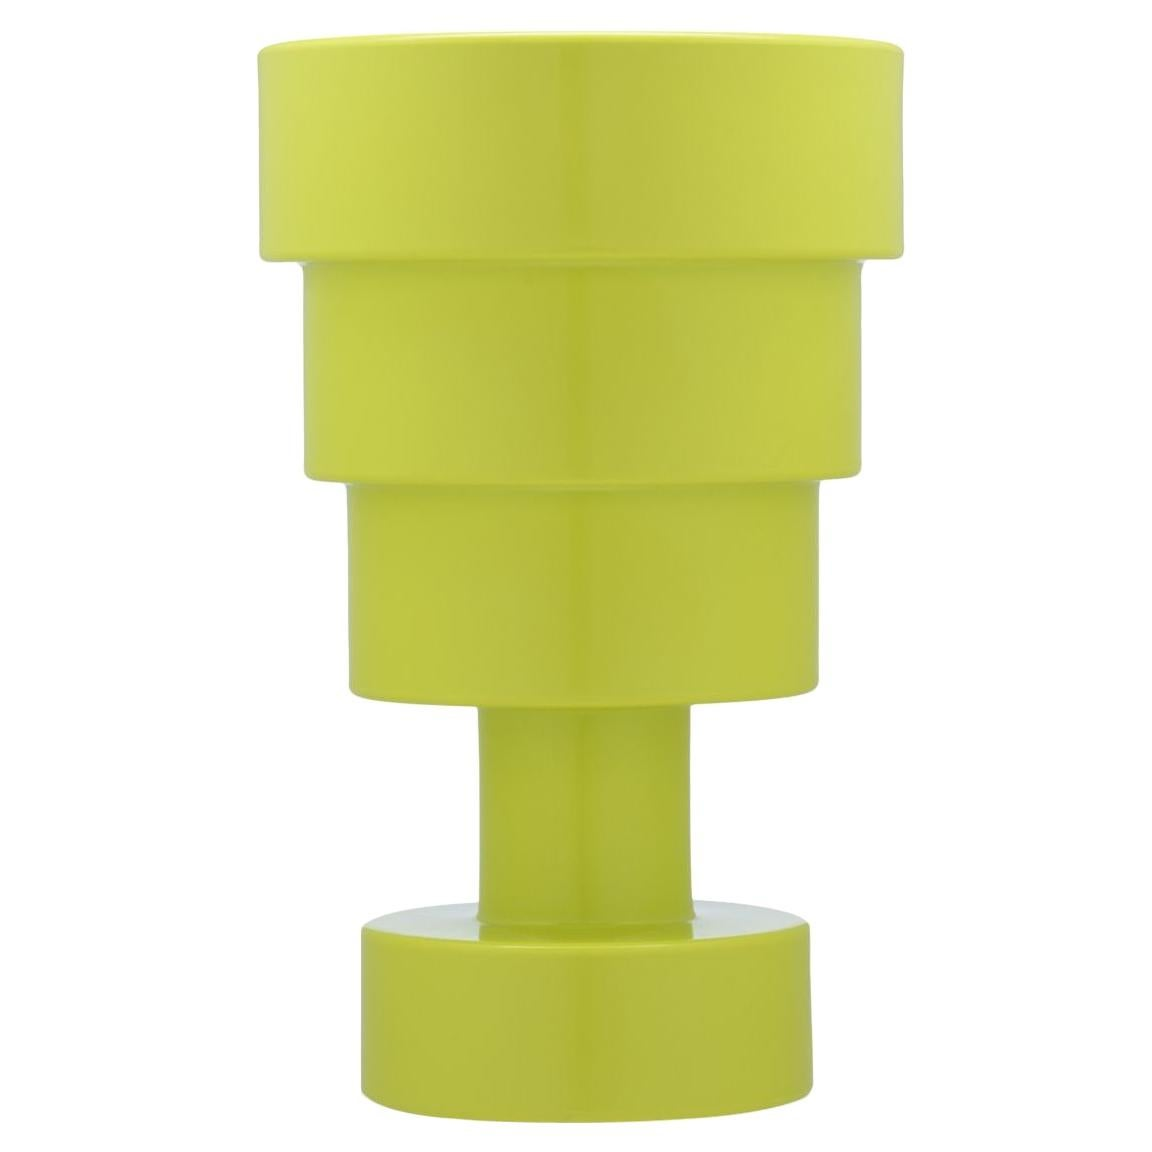 Kartell Calice Stool in Green by Ettore Sottsass